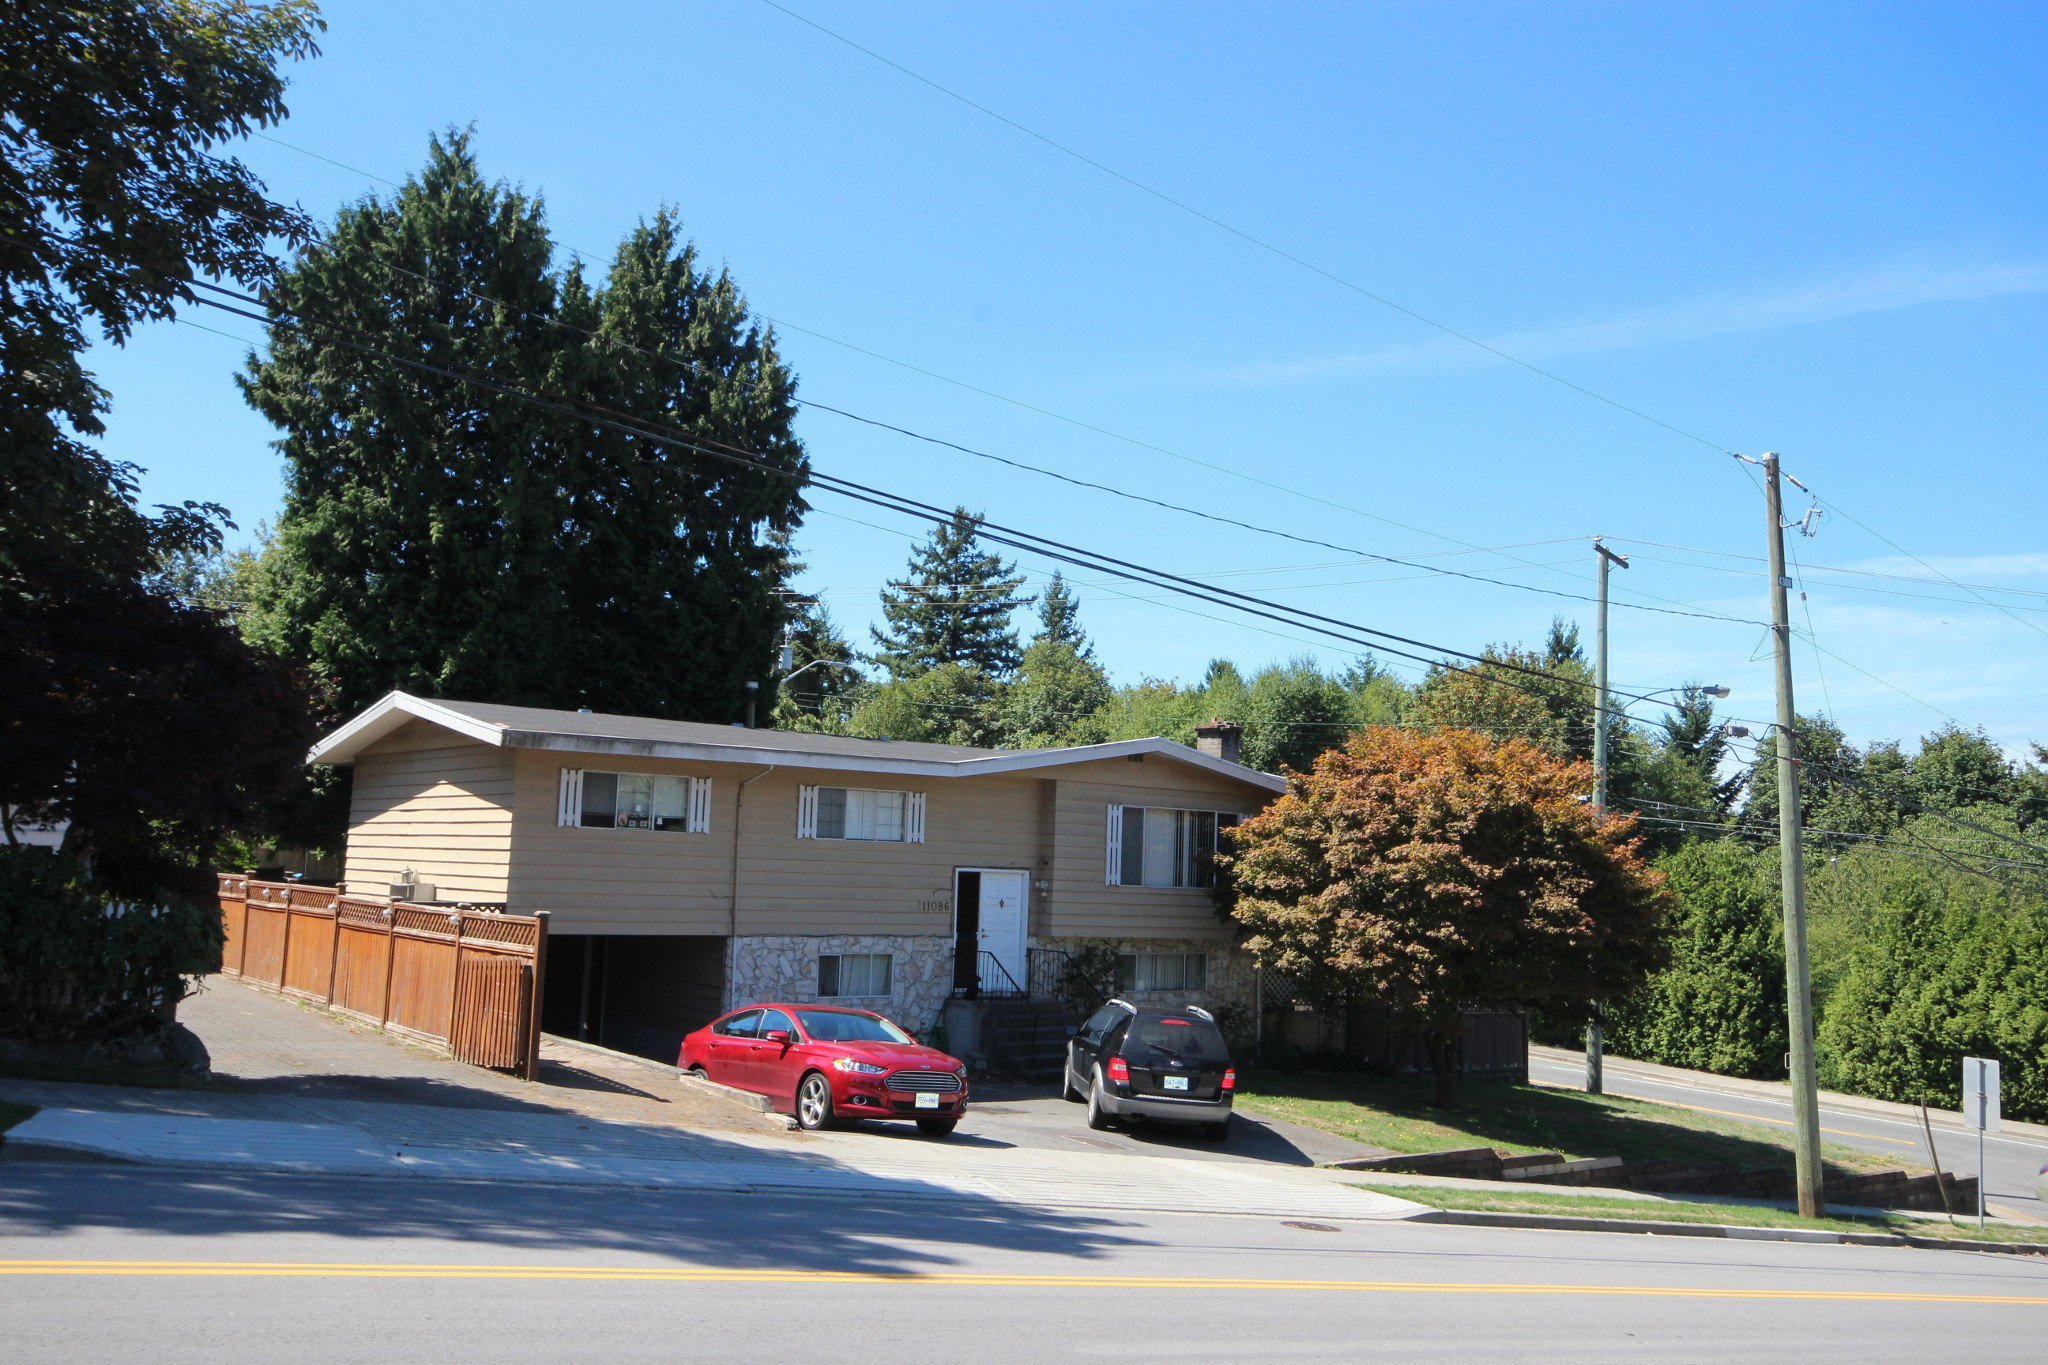 Main Photo: 11086 92A Avenue in Delta: Annieville House for sale (N. Delta)  : MLS®# F1449539